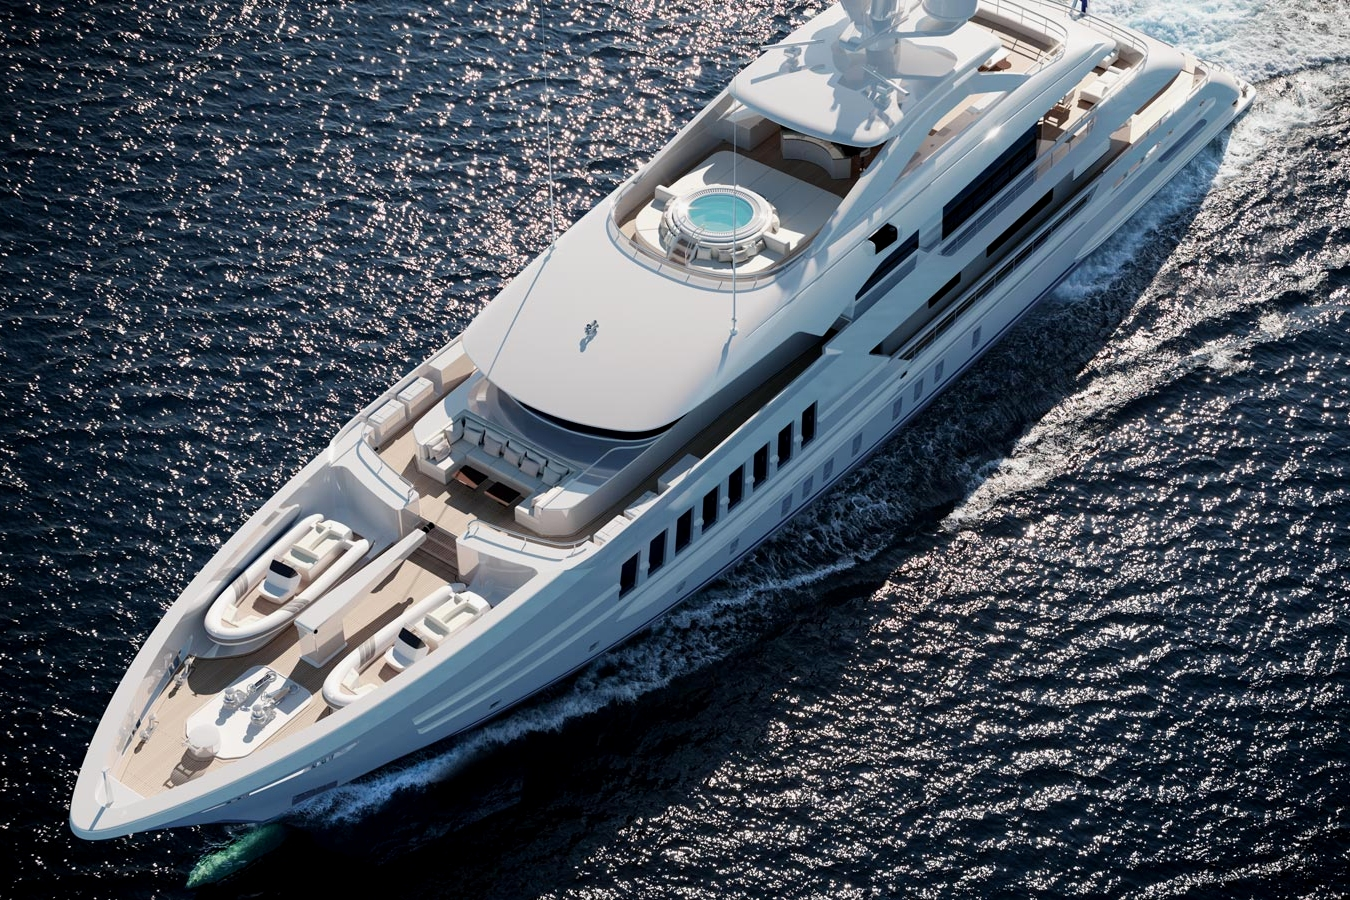 Best yacht bands and the most expensive yacht brands in the world